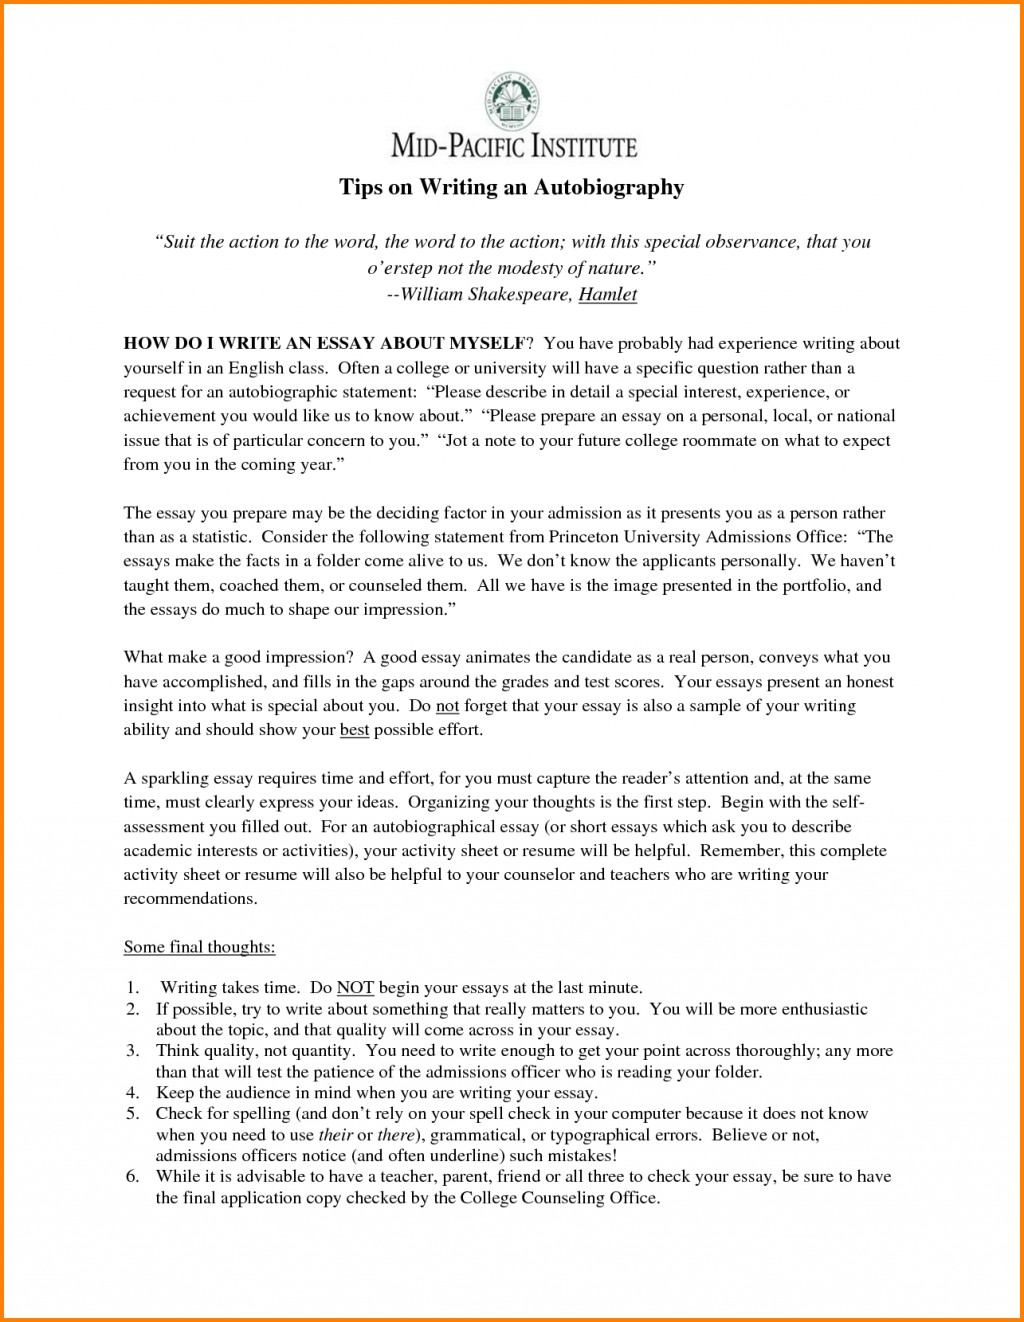 007 Essay Example How To Begin An Start College Application About Yourself Starting L Incredible Write On A Book You Didn't Read Open Paragraph For Large